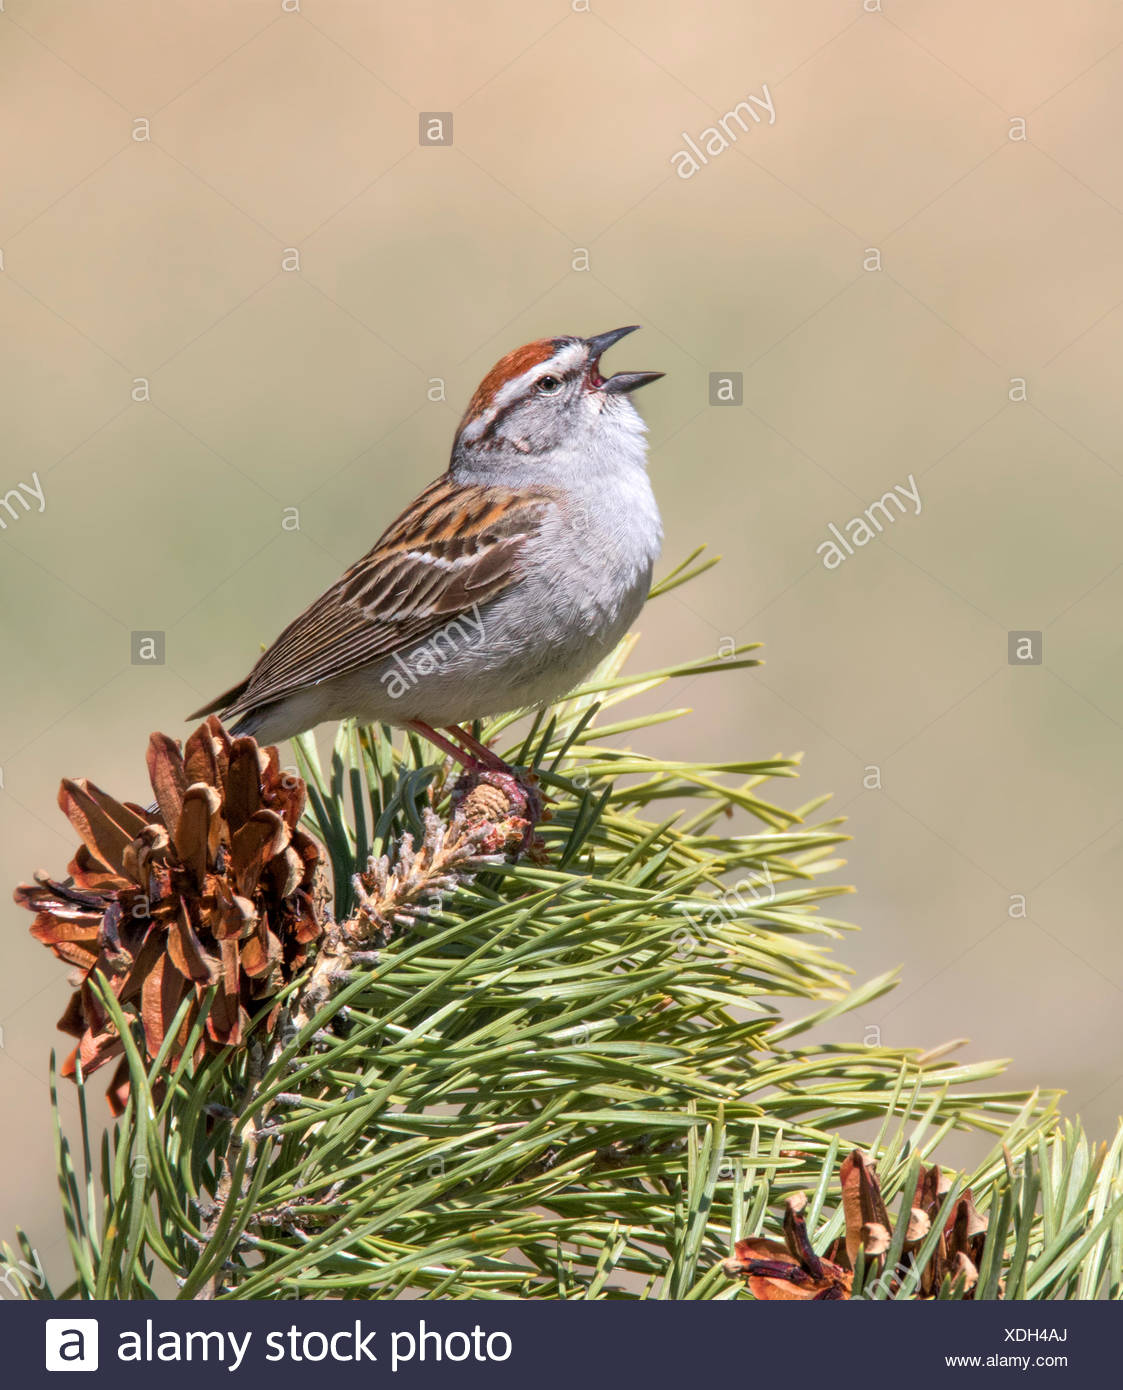 A male Chipping Sparrow, Spizella passerina, sings from a spruce tree in Saskatchewan, Canada Stock Photo